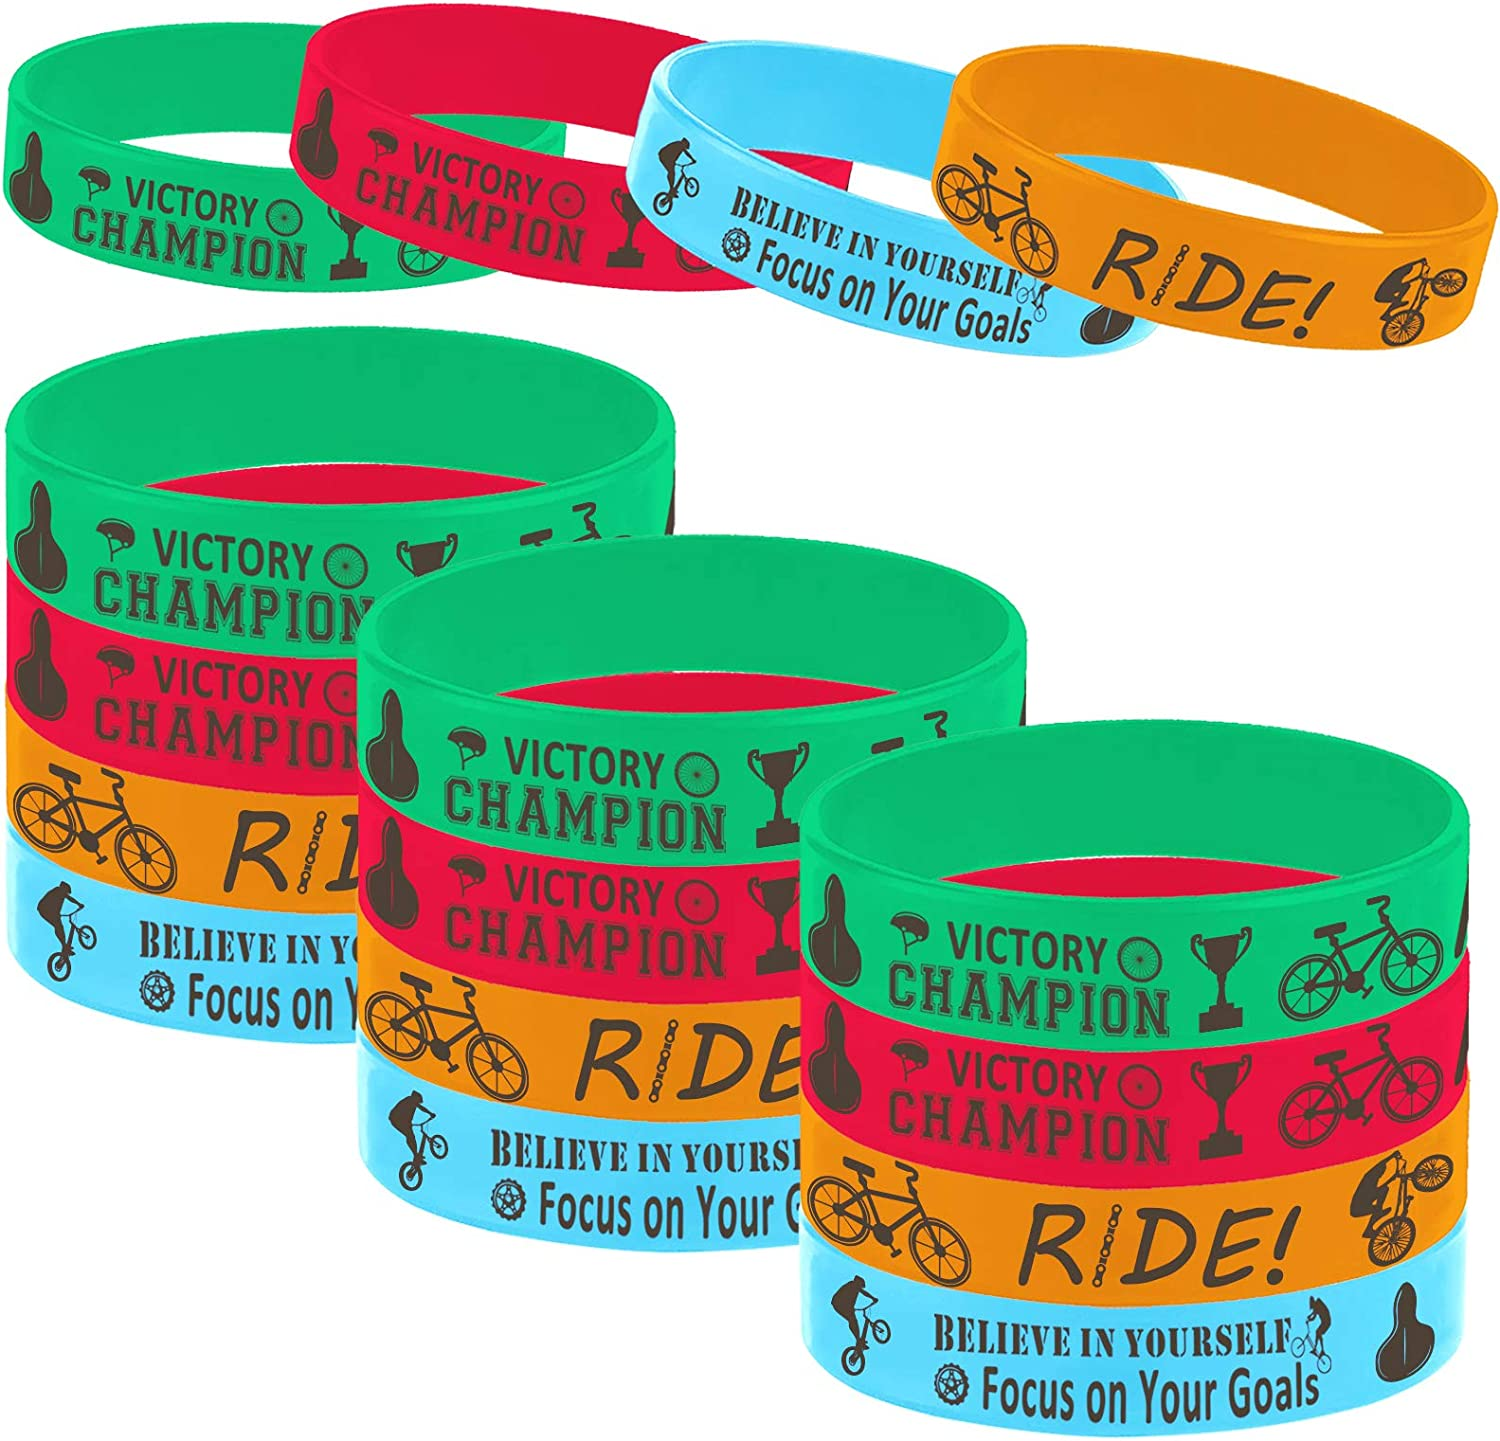 Oringaga 24PCS Bicycle Party Motivational Rubber Bracelets for Kids Adult, BMX Bike Game Party Baby Shower Birthday Party Supplies Decorations Gifts Prize Goodie Bag Favors Silicone Wristbands